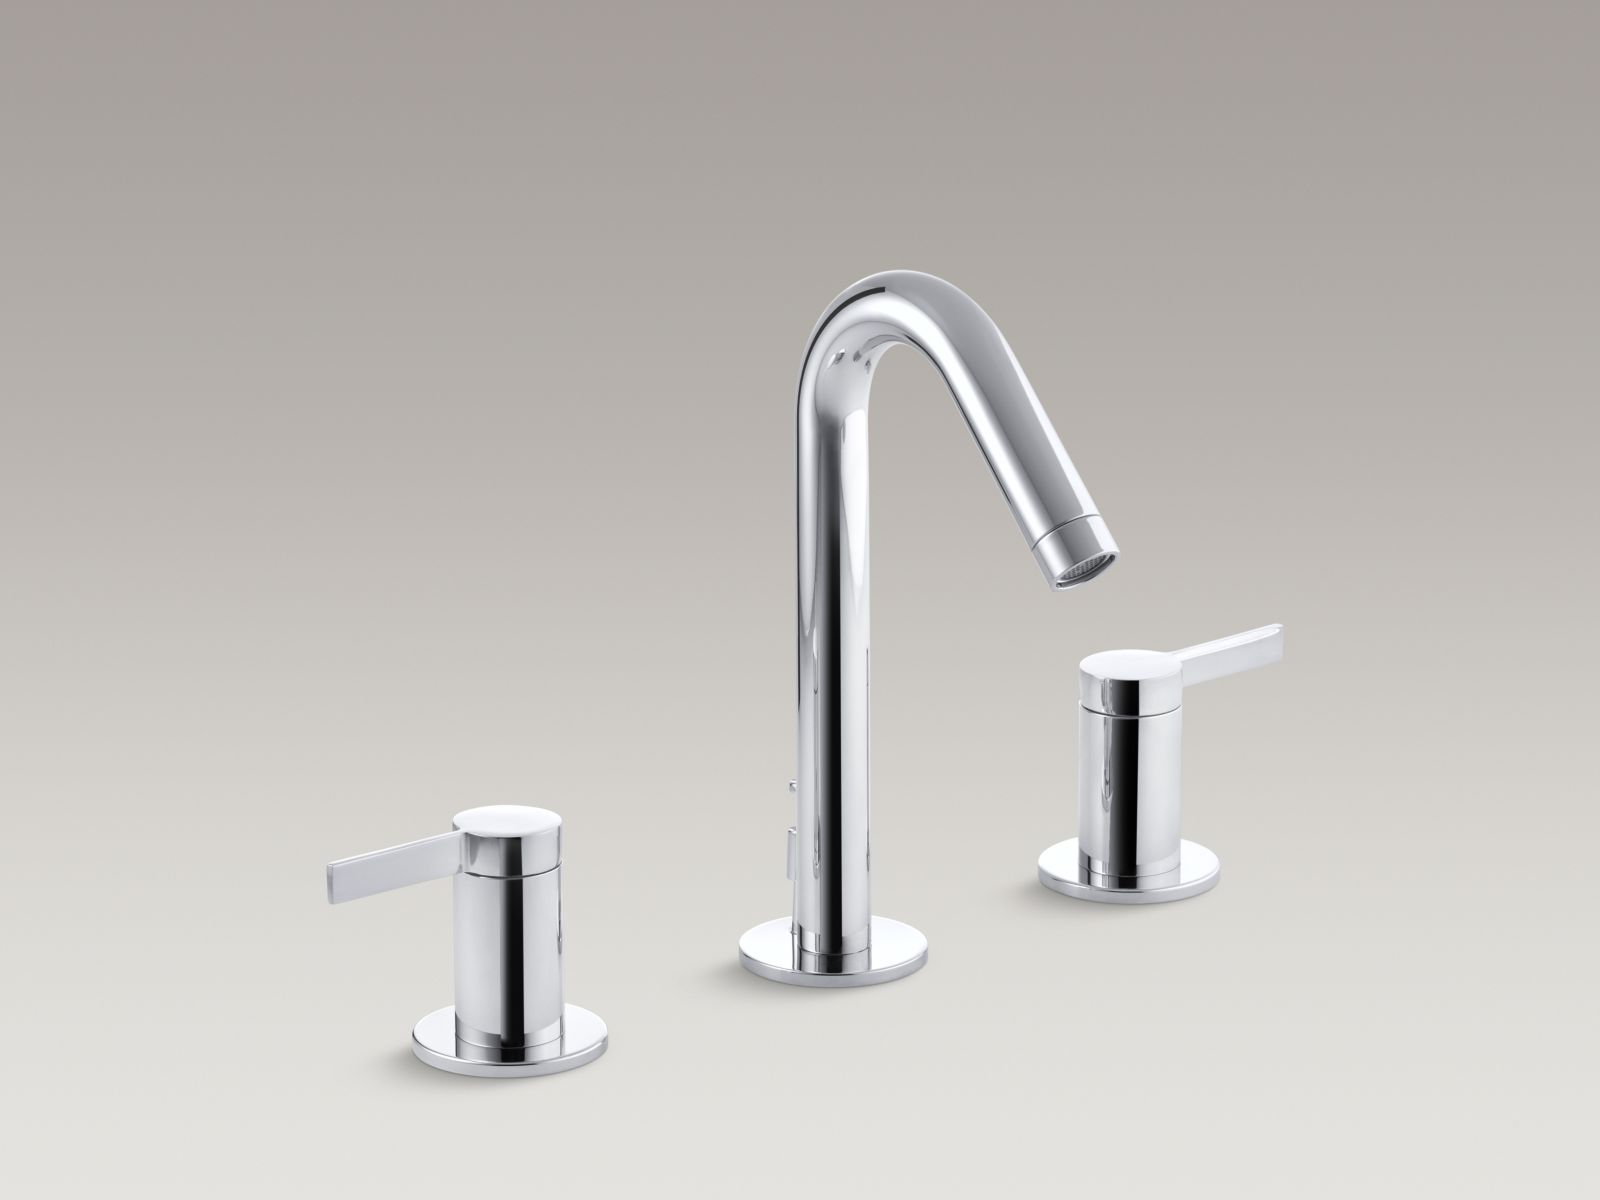 Kohler K-942-4-CP Stillness Widespread Bathroom Faucet Polished Chrome